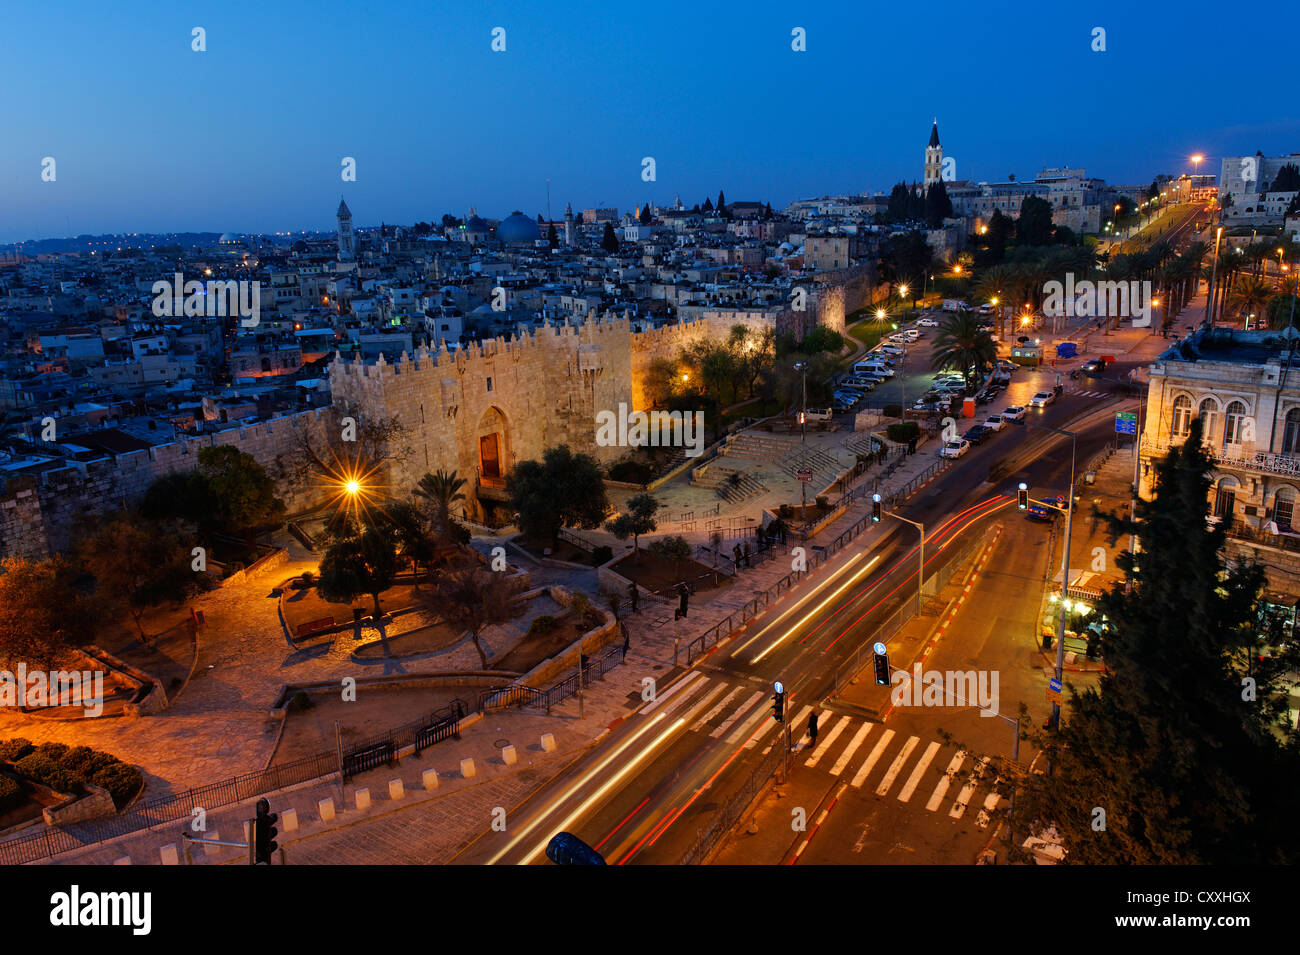 Damascus Gate with city walls, dusk, Old City, Jerusalem, from Paulus guest house, Israel, Middle East - Stock Image